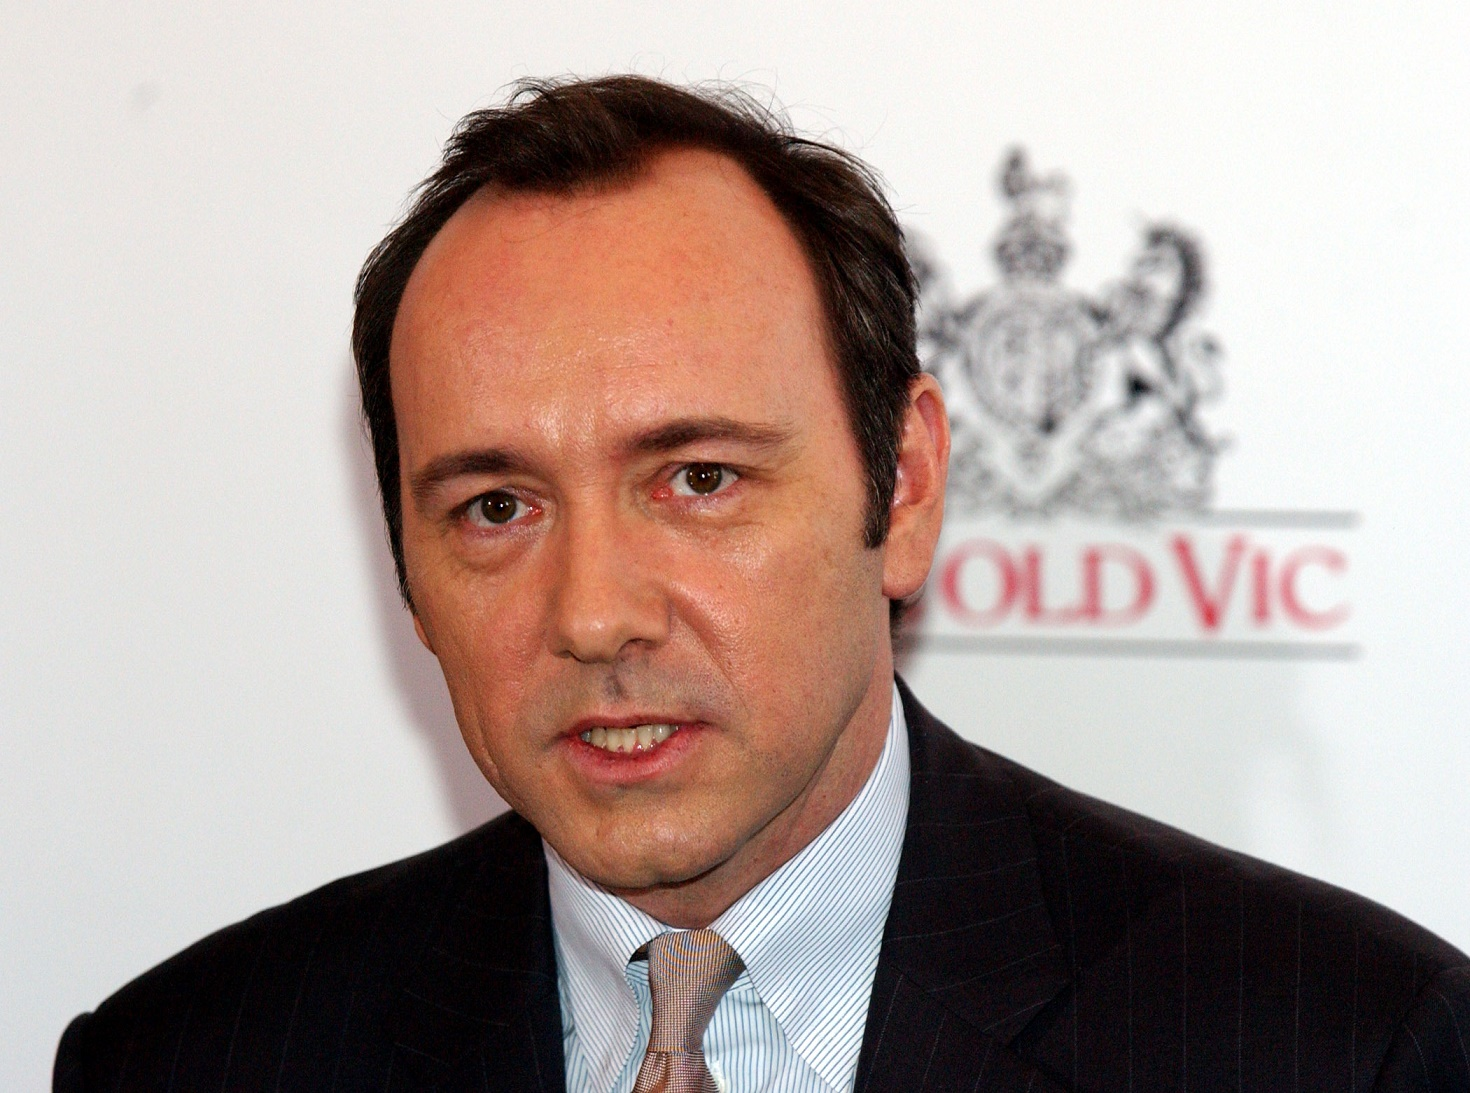 London theatre receives 20 claims of inappropriate behaviour by Kevin Spacey